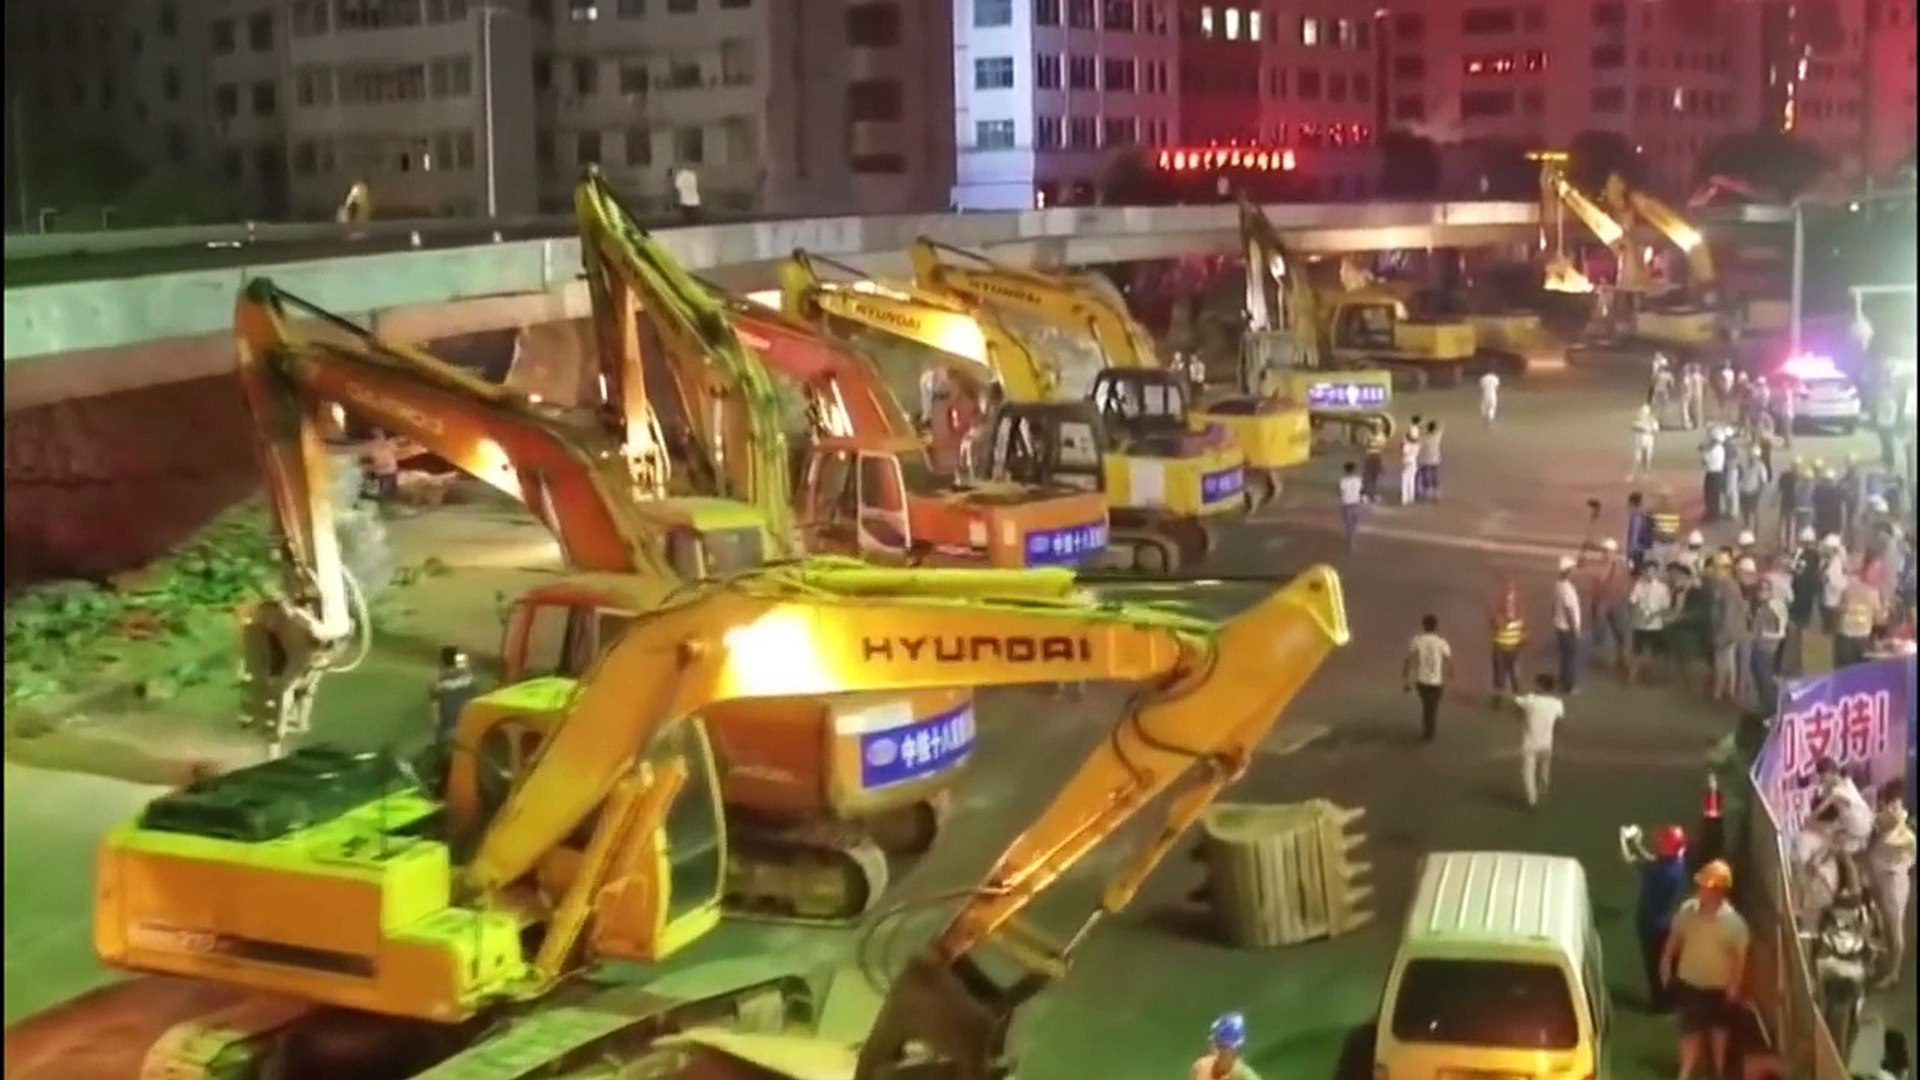 World Amazing Modern Latest Intelligent Technology Heavy Equipment Mega Machines Construction